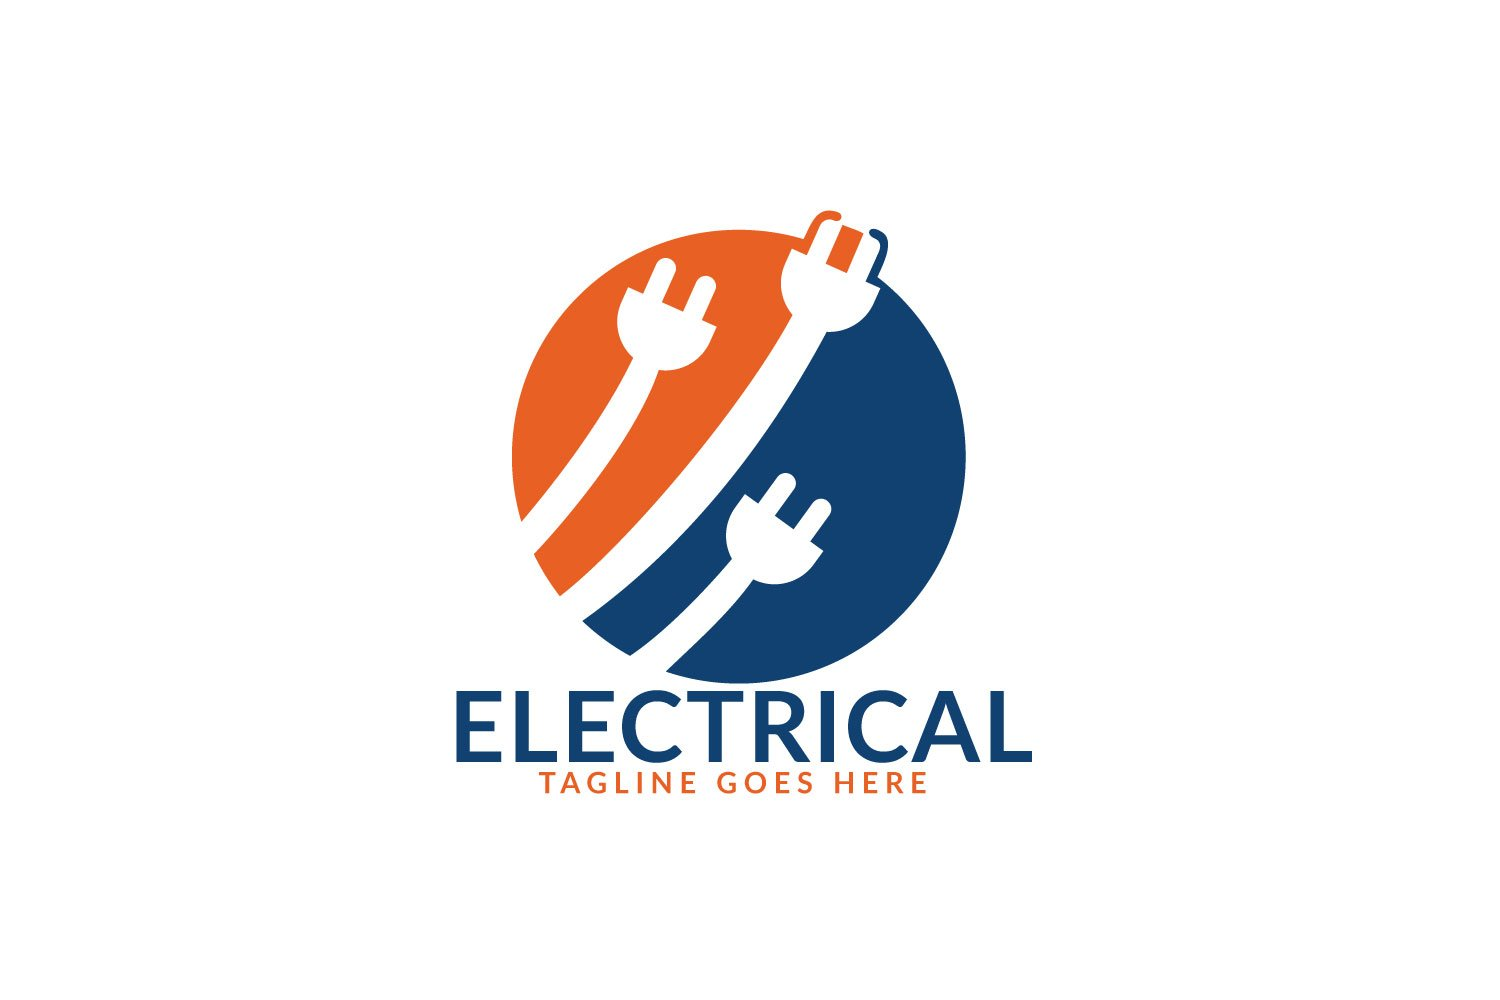 electrical plug logo design power energy symbol 244366 logos design bundles electrical plug logo design power energy symbol